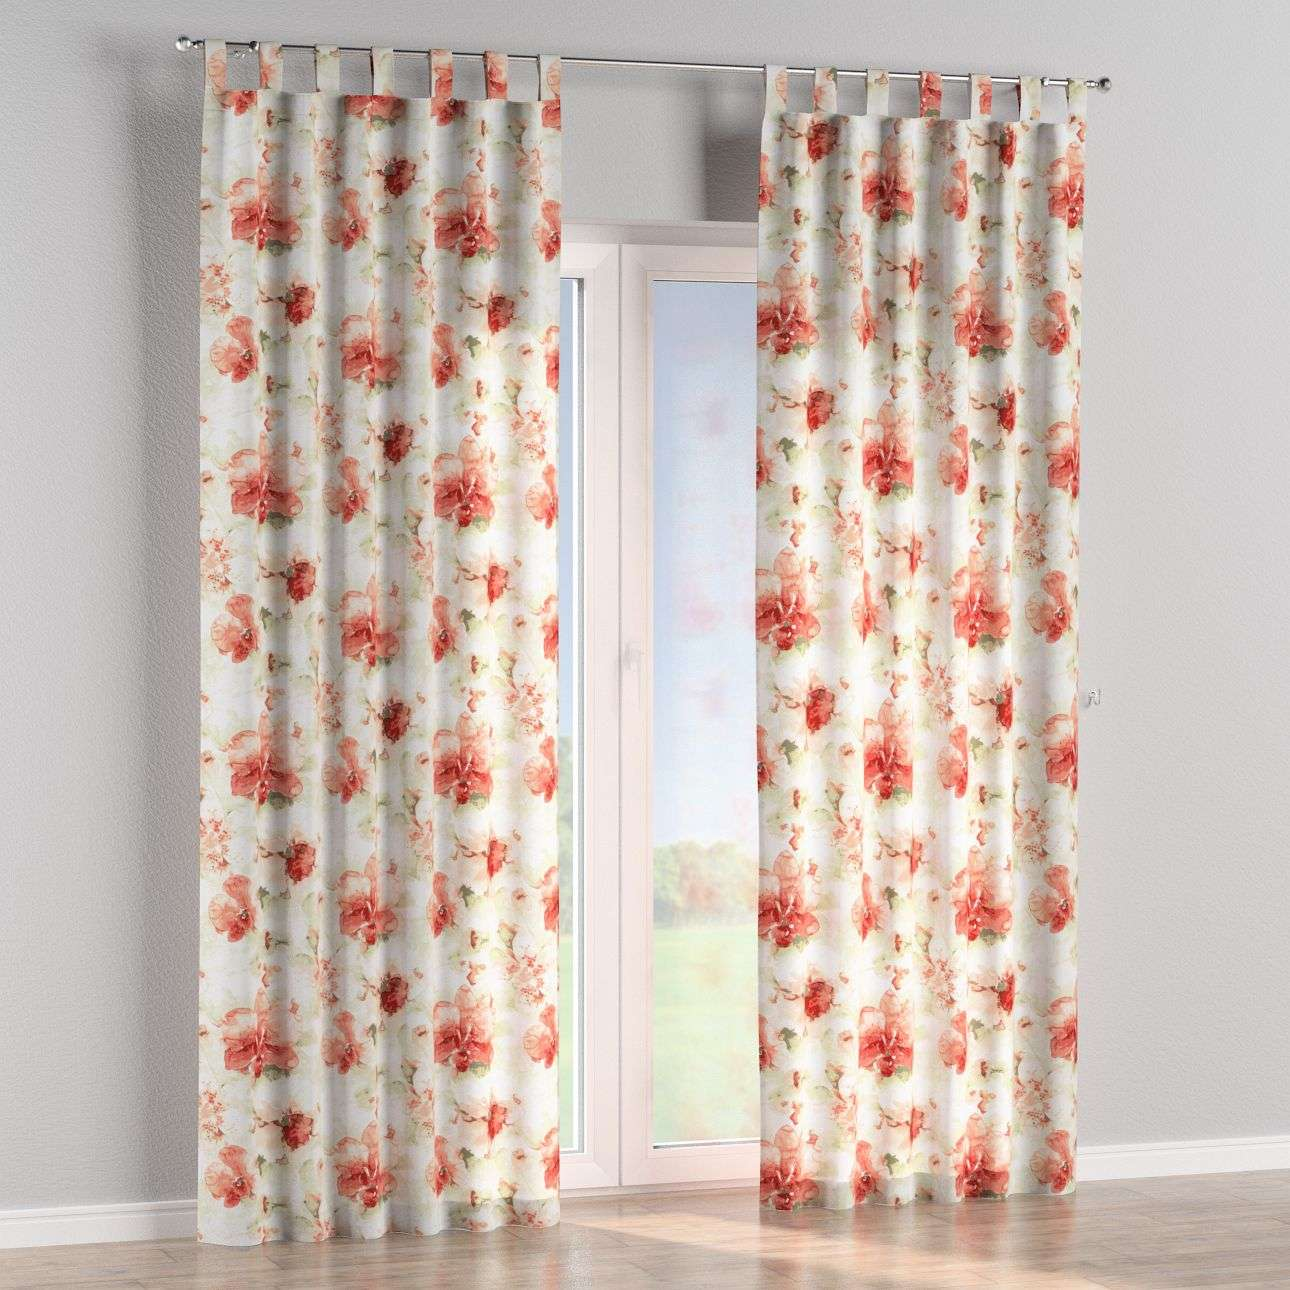 Tab top curtains 130 x 260 cm (51 x 102 inch) in collection Acapulco, fabric: 141-34